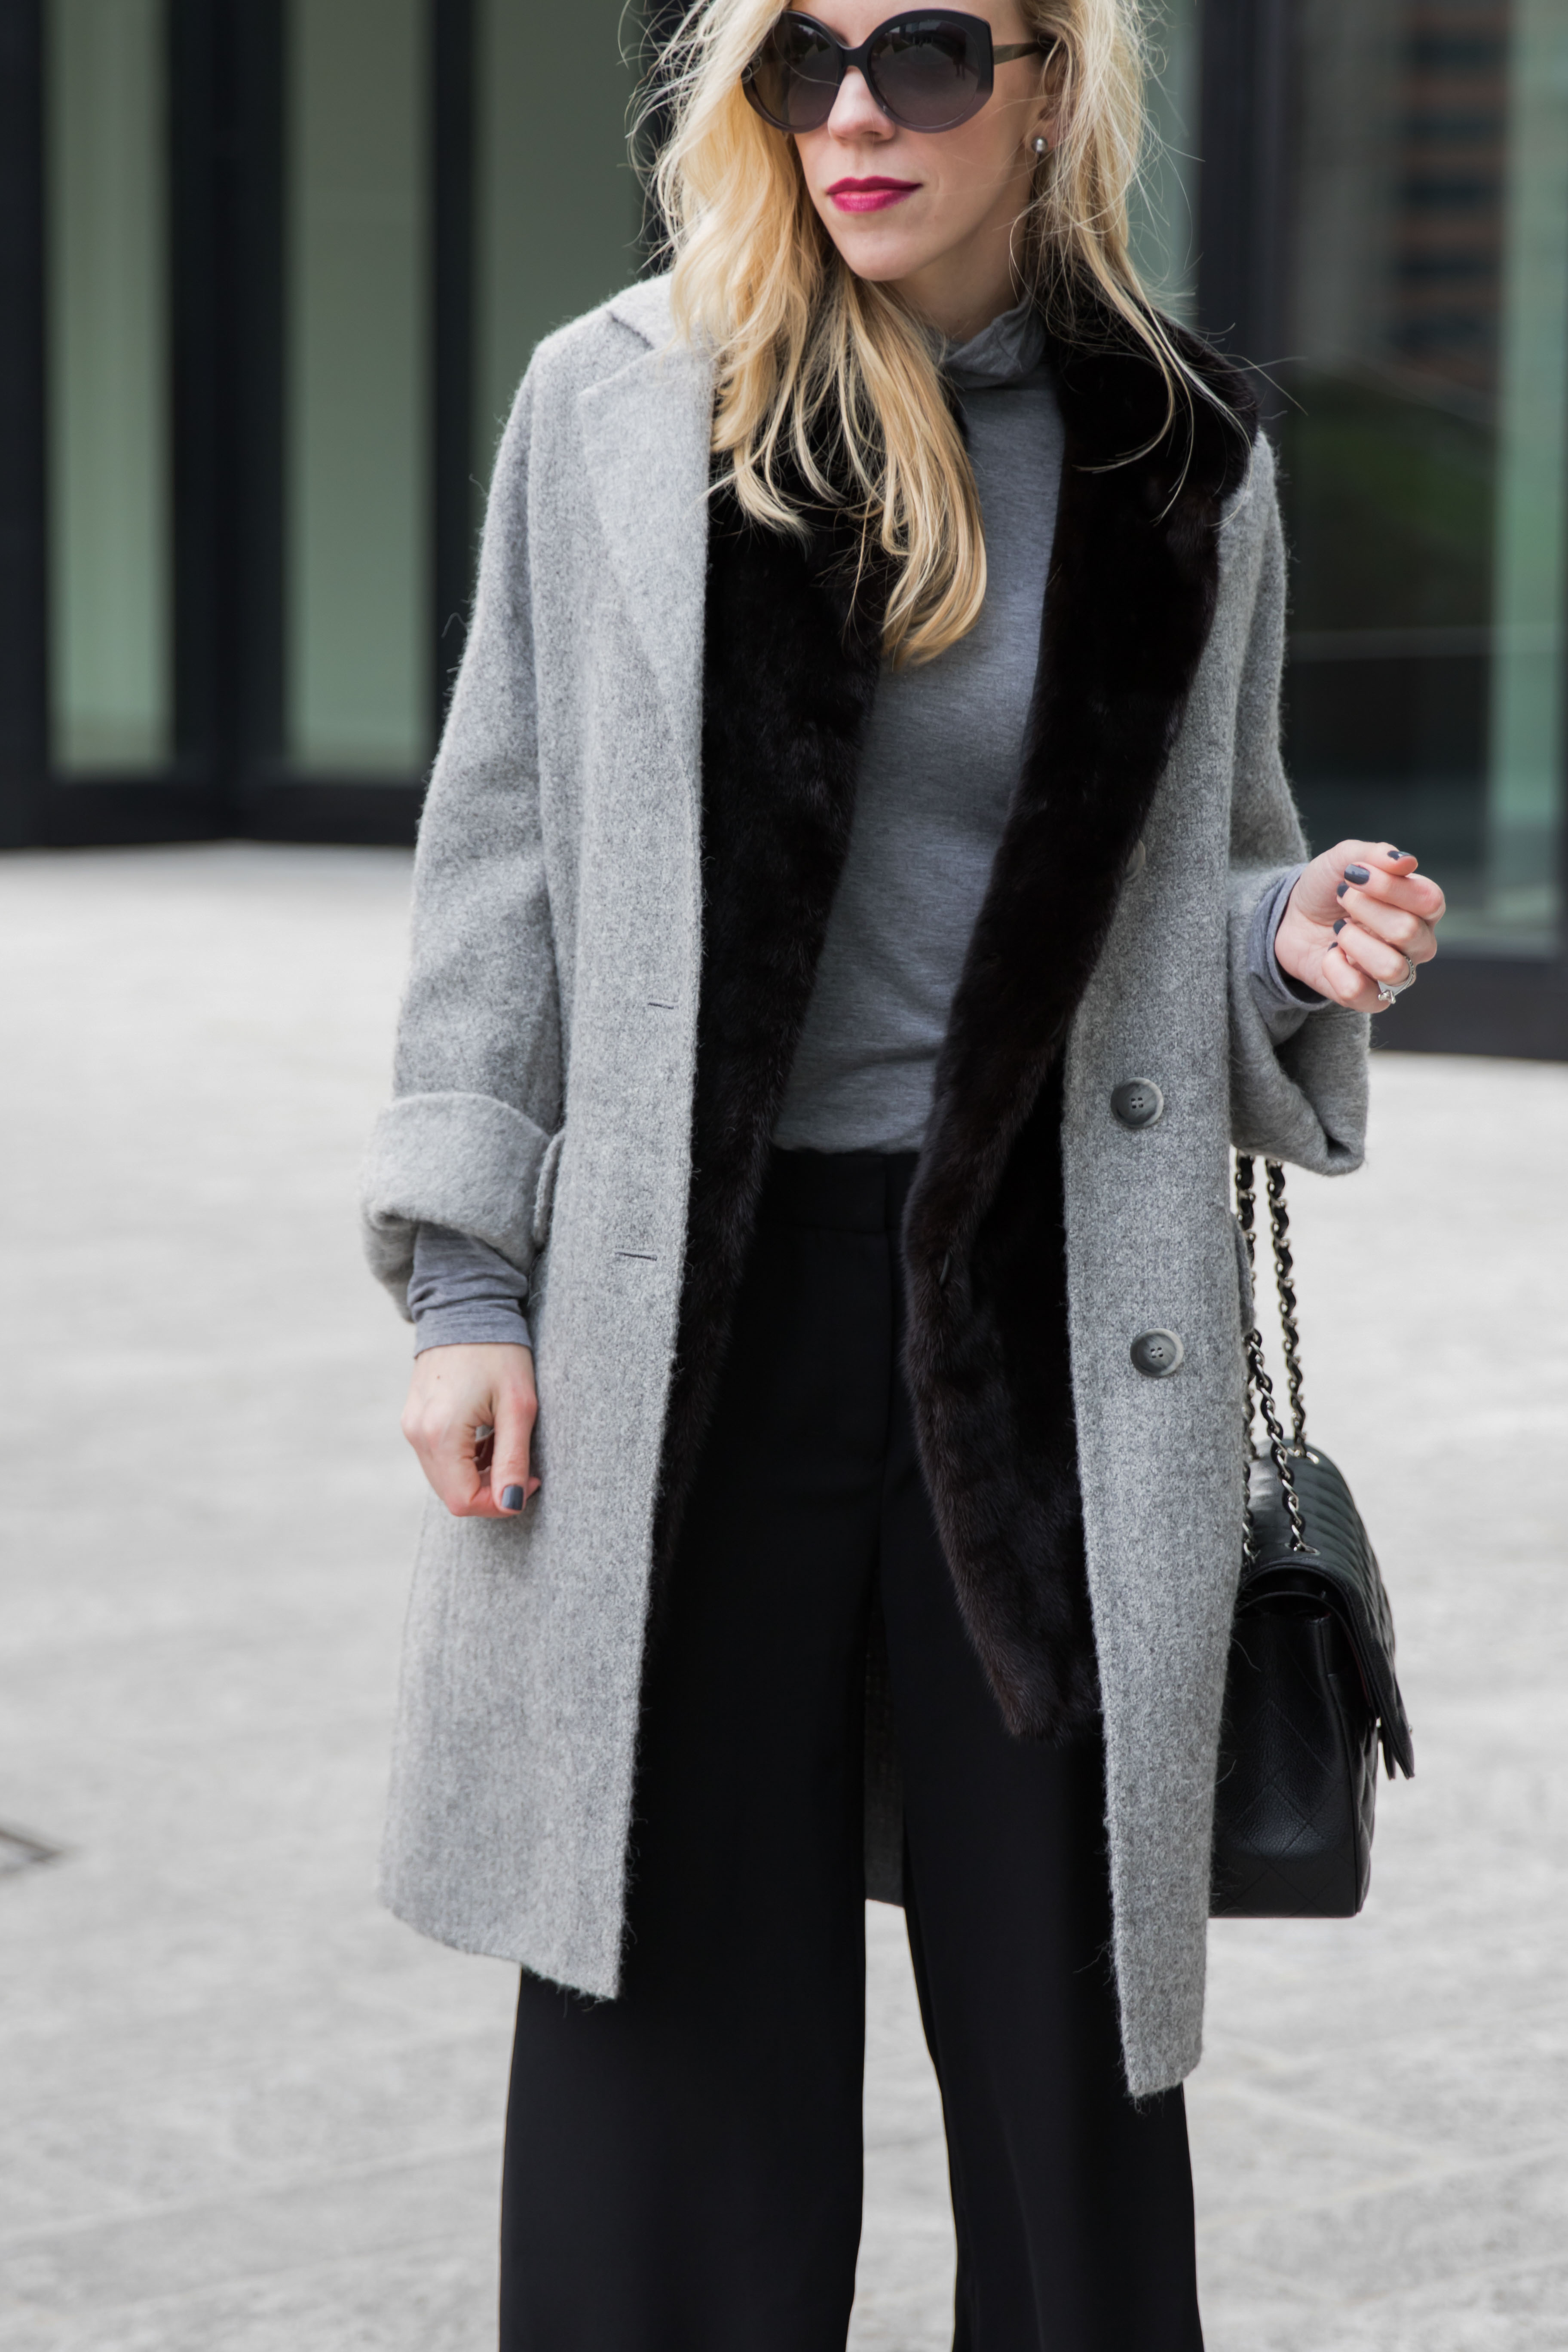 oversized gray coat layered over fur vest, Dior oversized Extase sunglasses, NARS Scarlett Empress berry lipstick